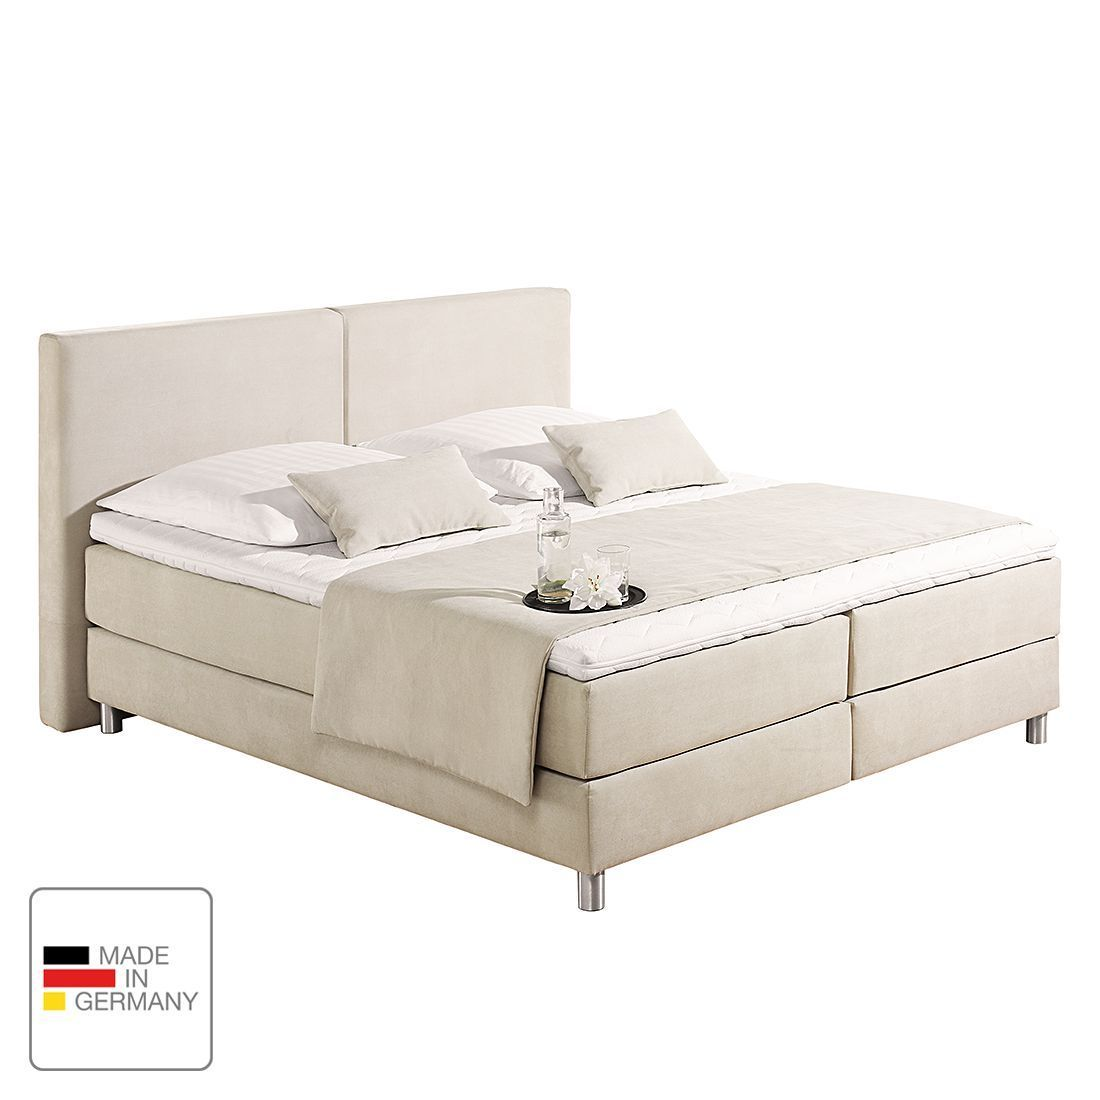 Buy Box Spring Beds Bed With Without Bed Box Bed Beds Box